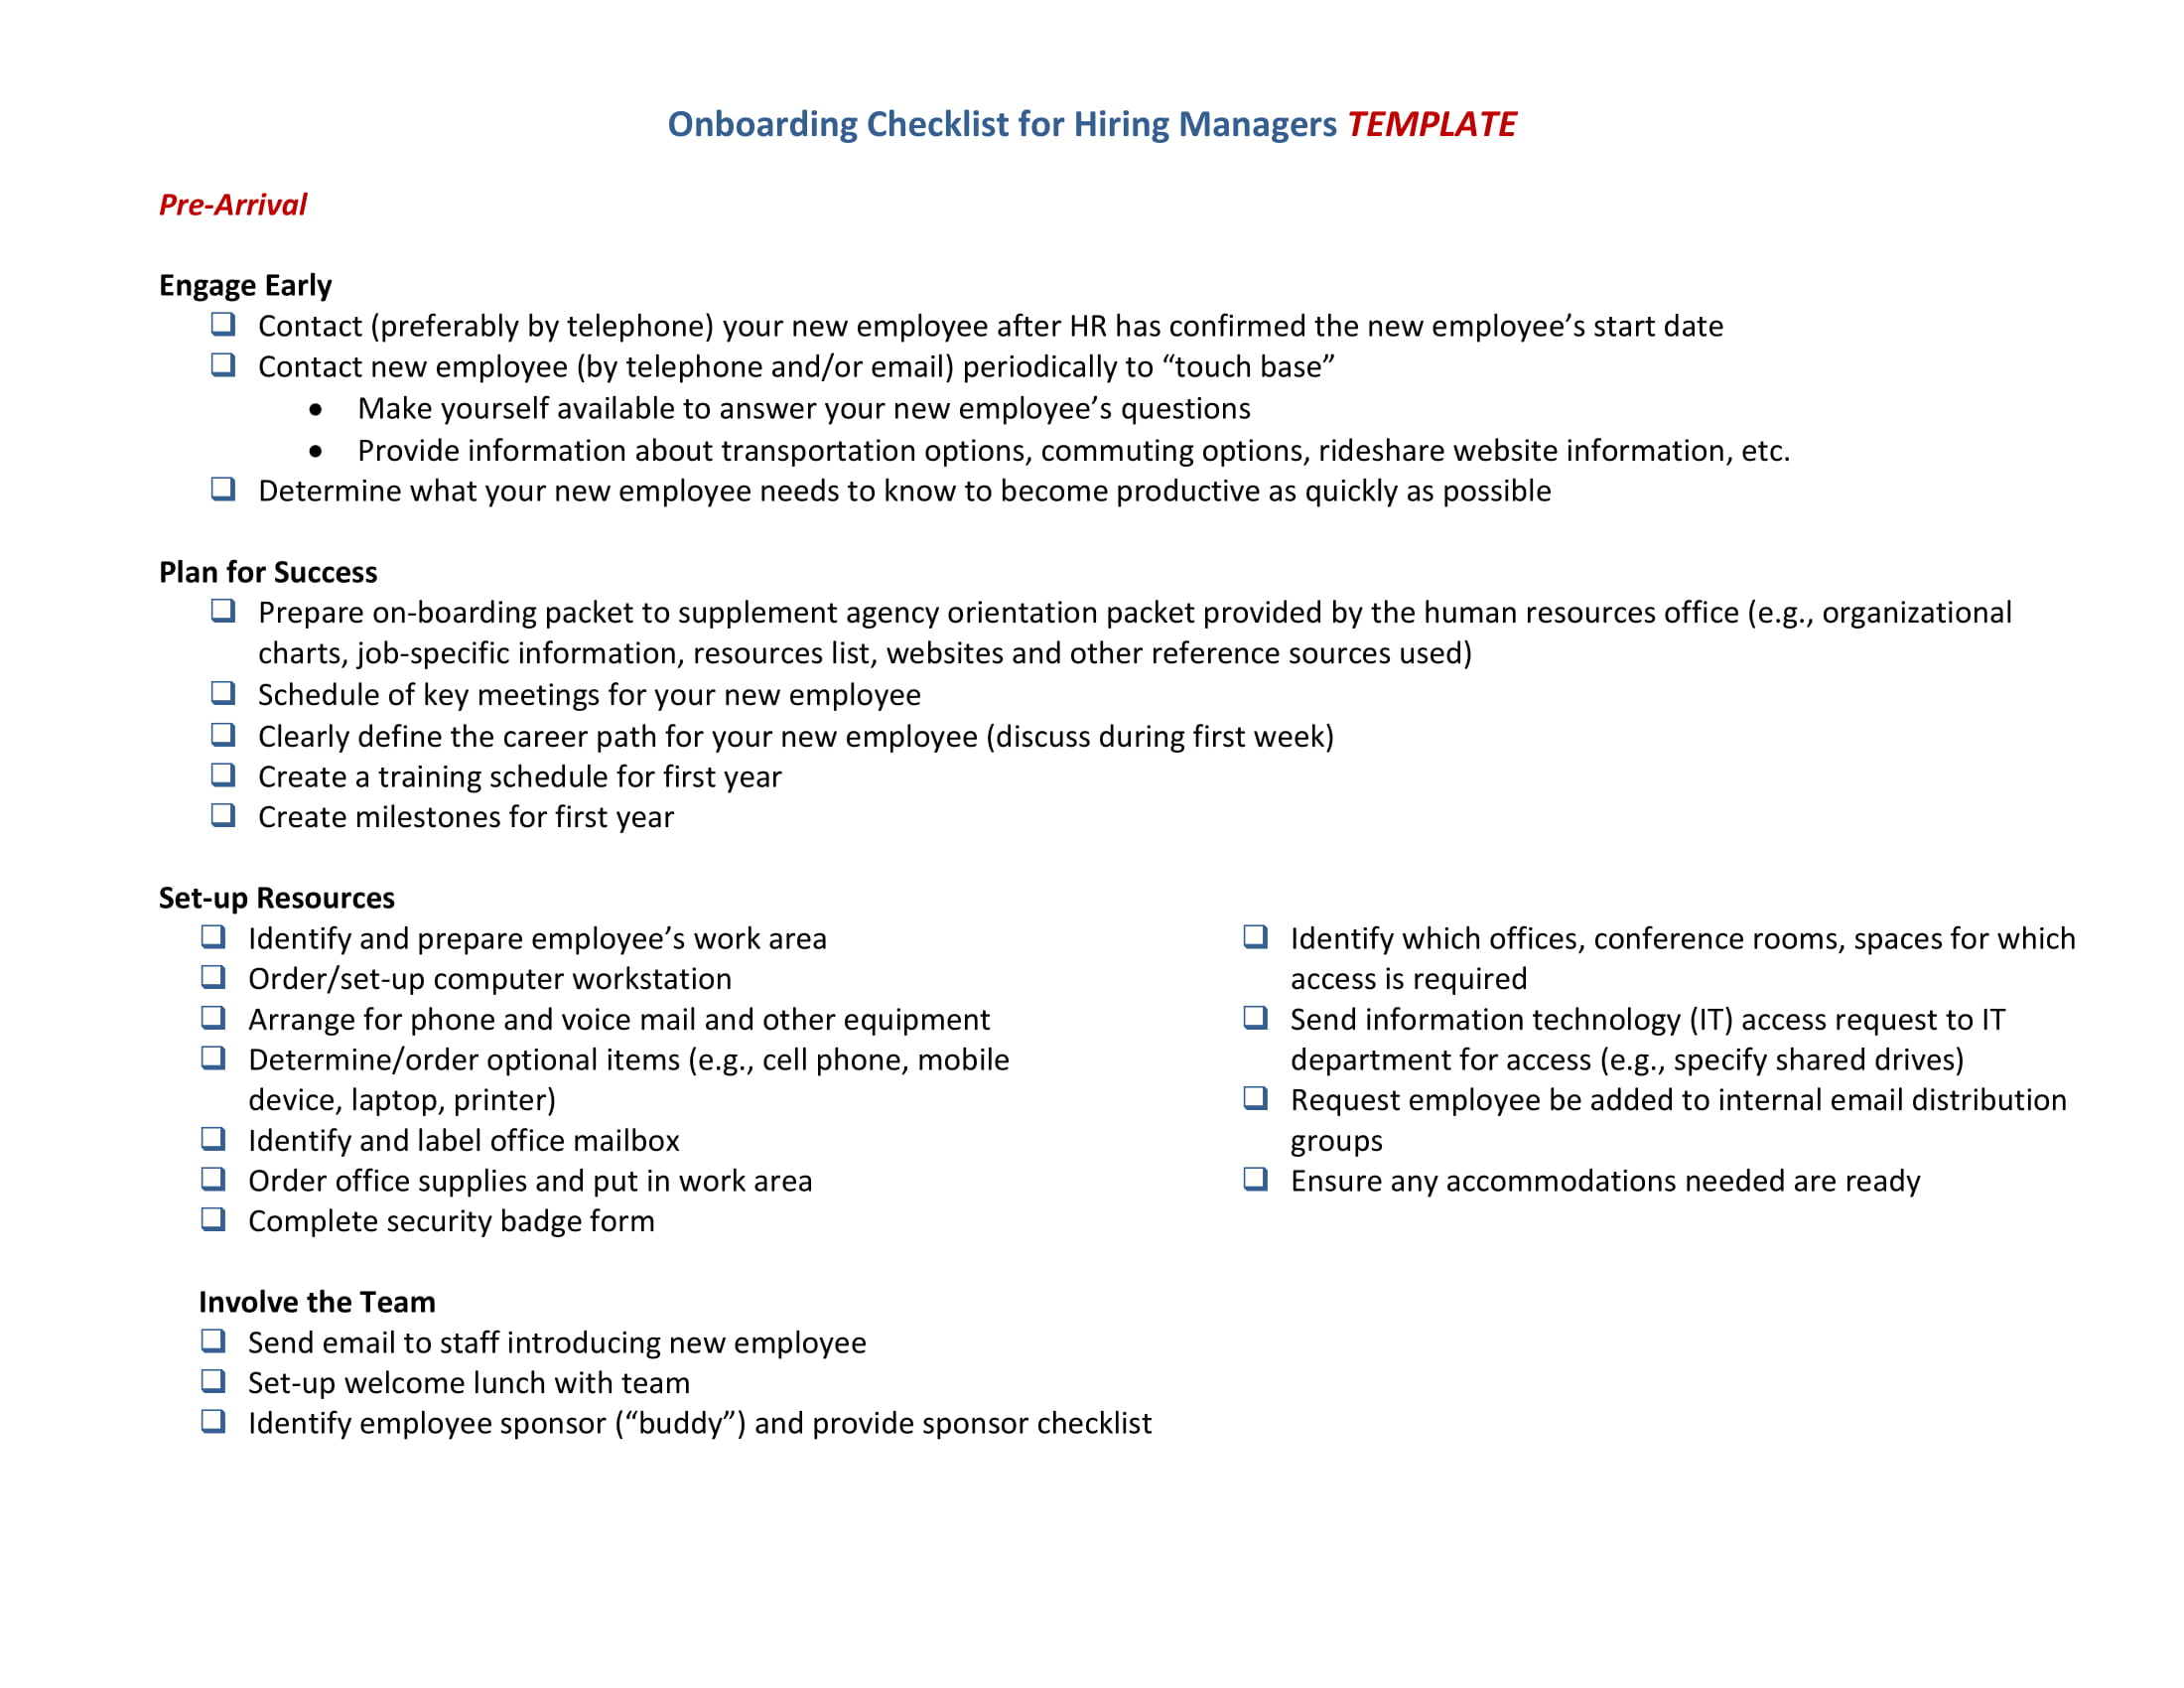 onboarding checklist for hiring managers template 2